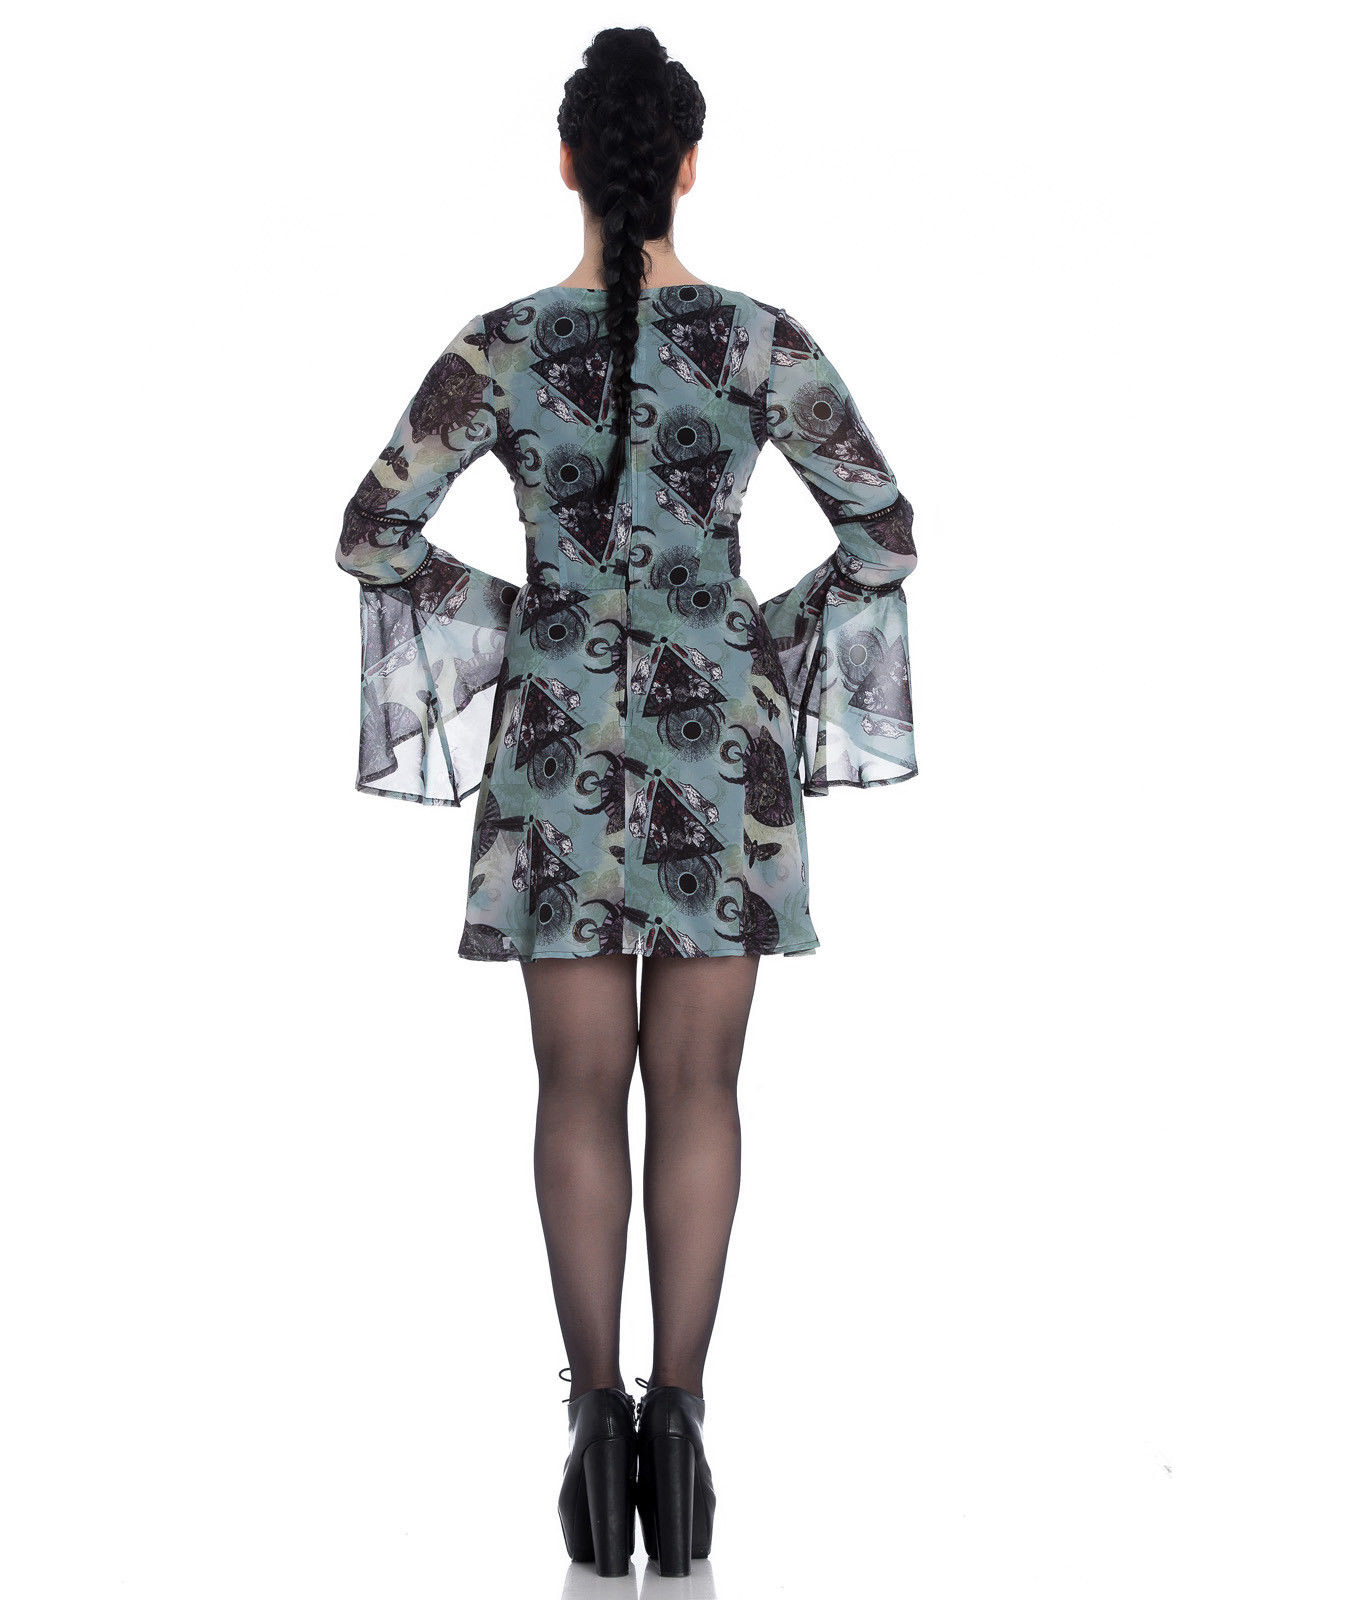 Hell-Bunny-Alchemy-Goth-Floaty-Witch-Mini-Dress-AFTER-DEATH-Teal-Green-All-Sizes thumbnail 25